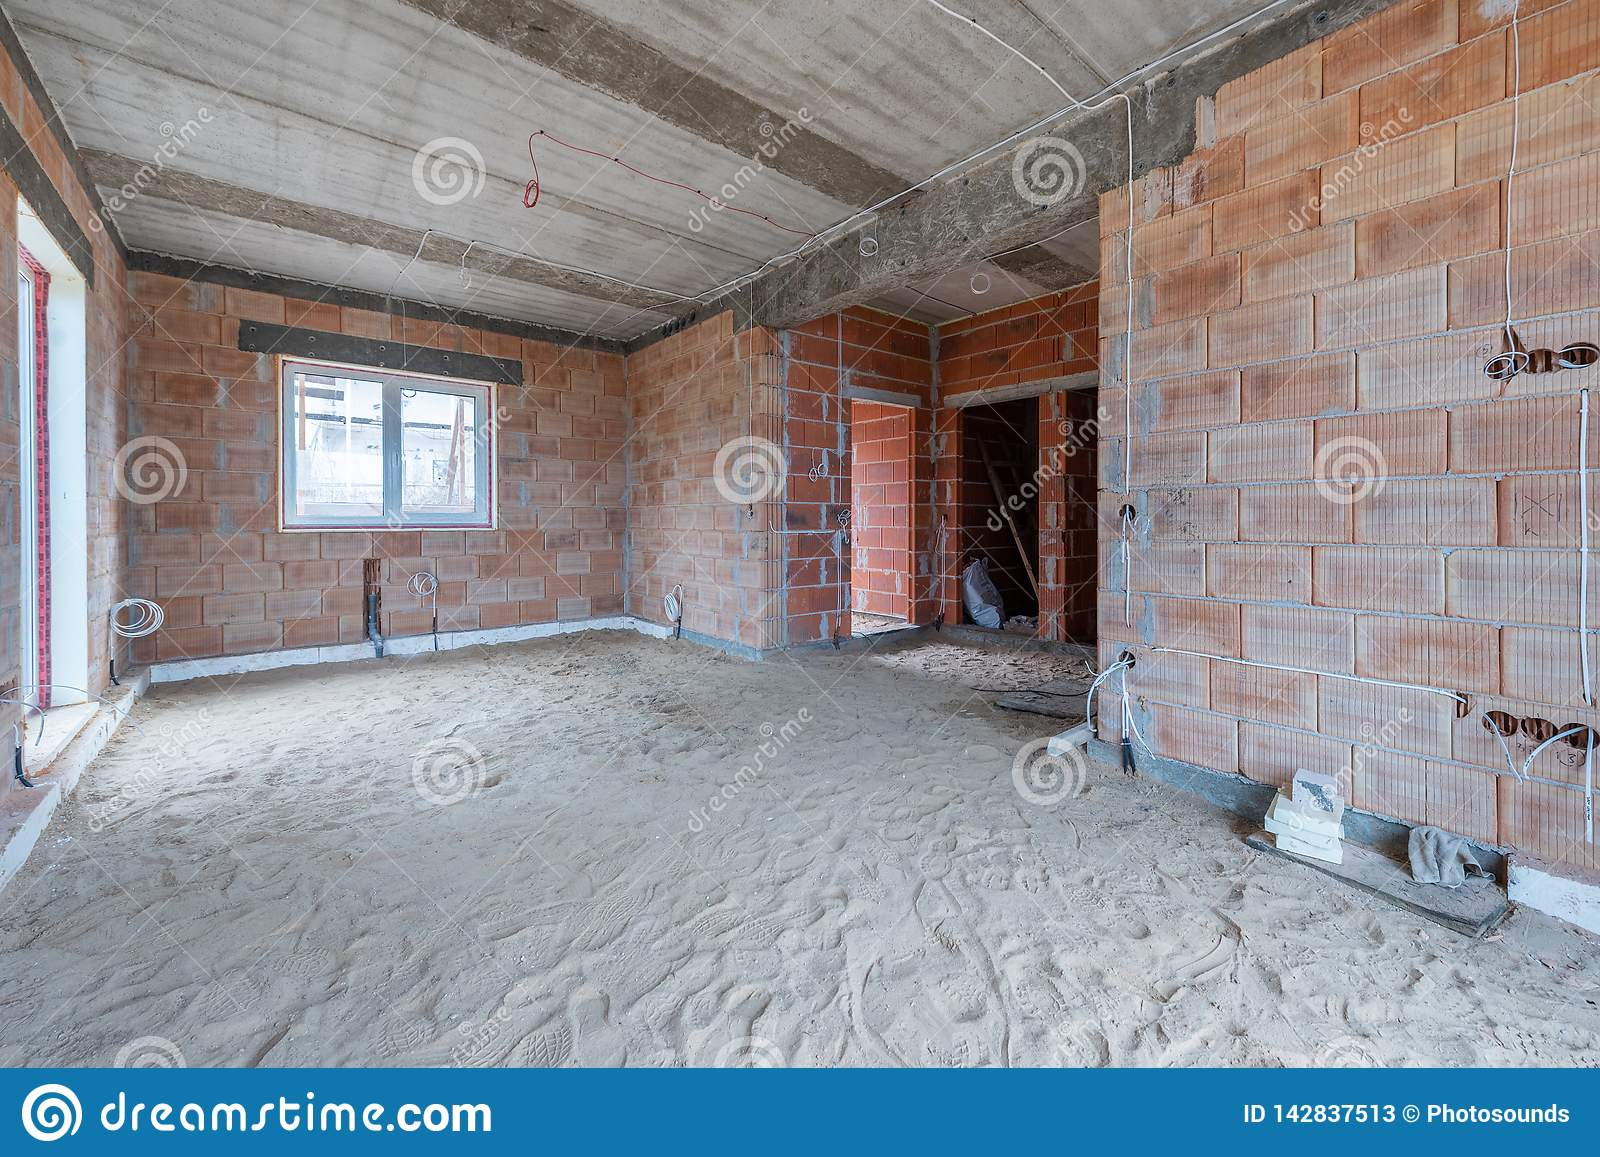 Brilliant A New Home Under Construction Stock Image Image Of Construction Wiring 101 Eumquscobadownsetwise Assnl